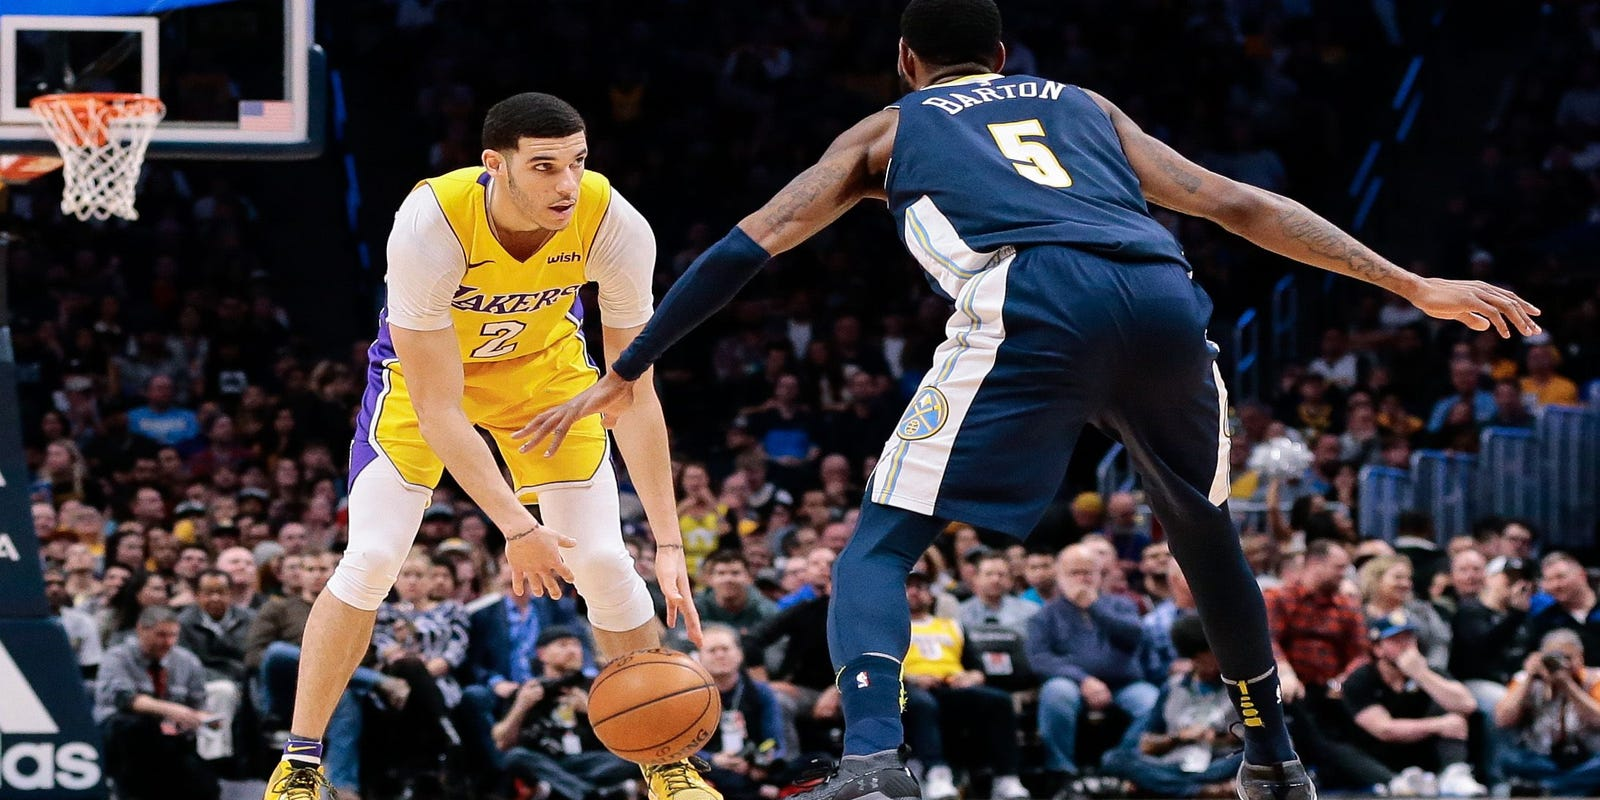 f051ac622 NBA rookie rankings  Lonzo Ball gaining confidence after injury